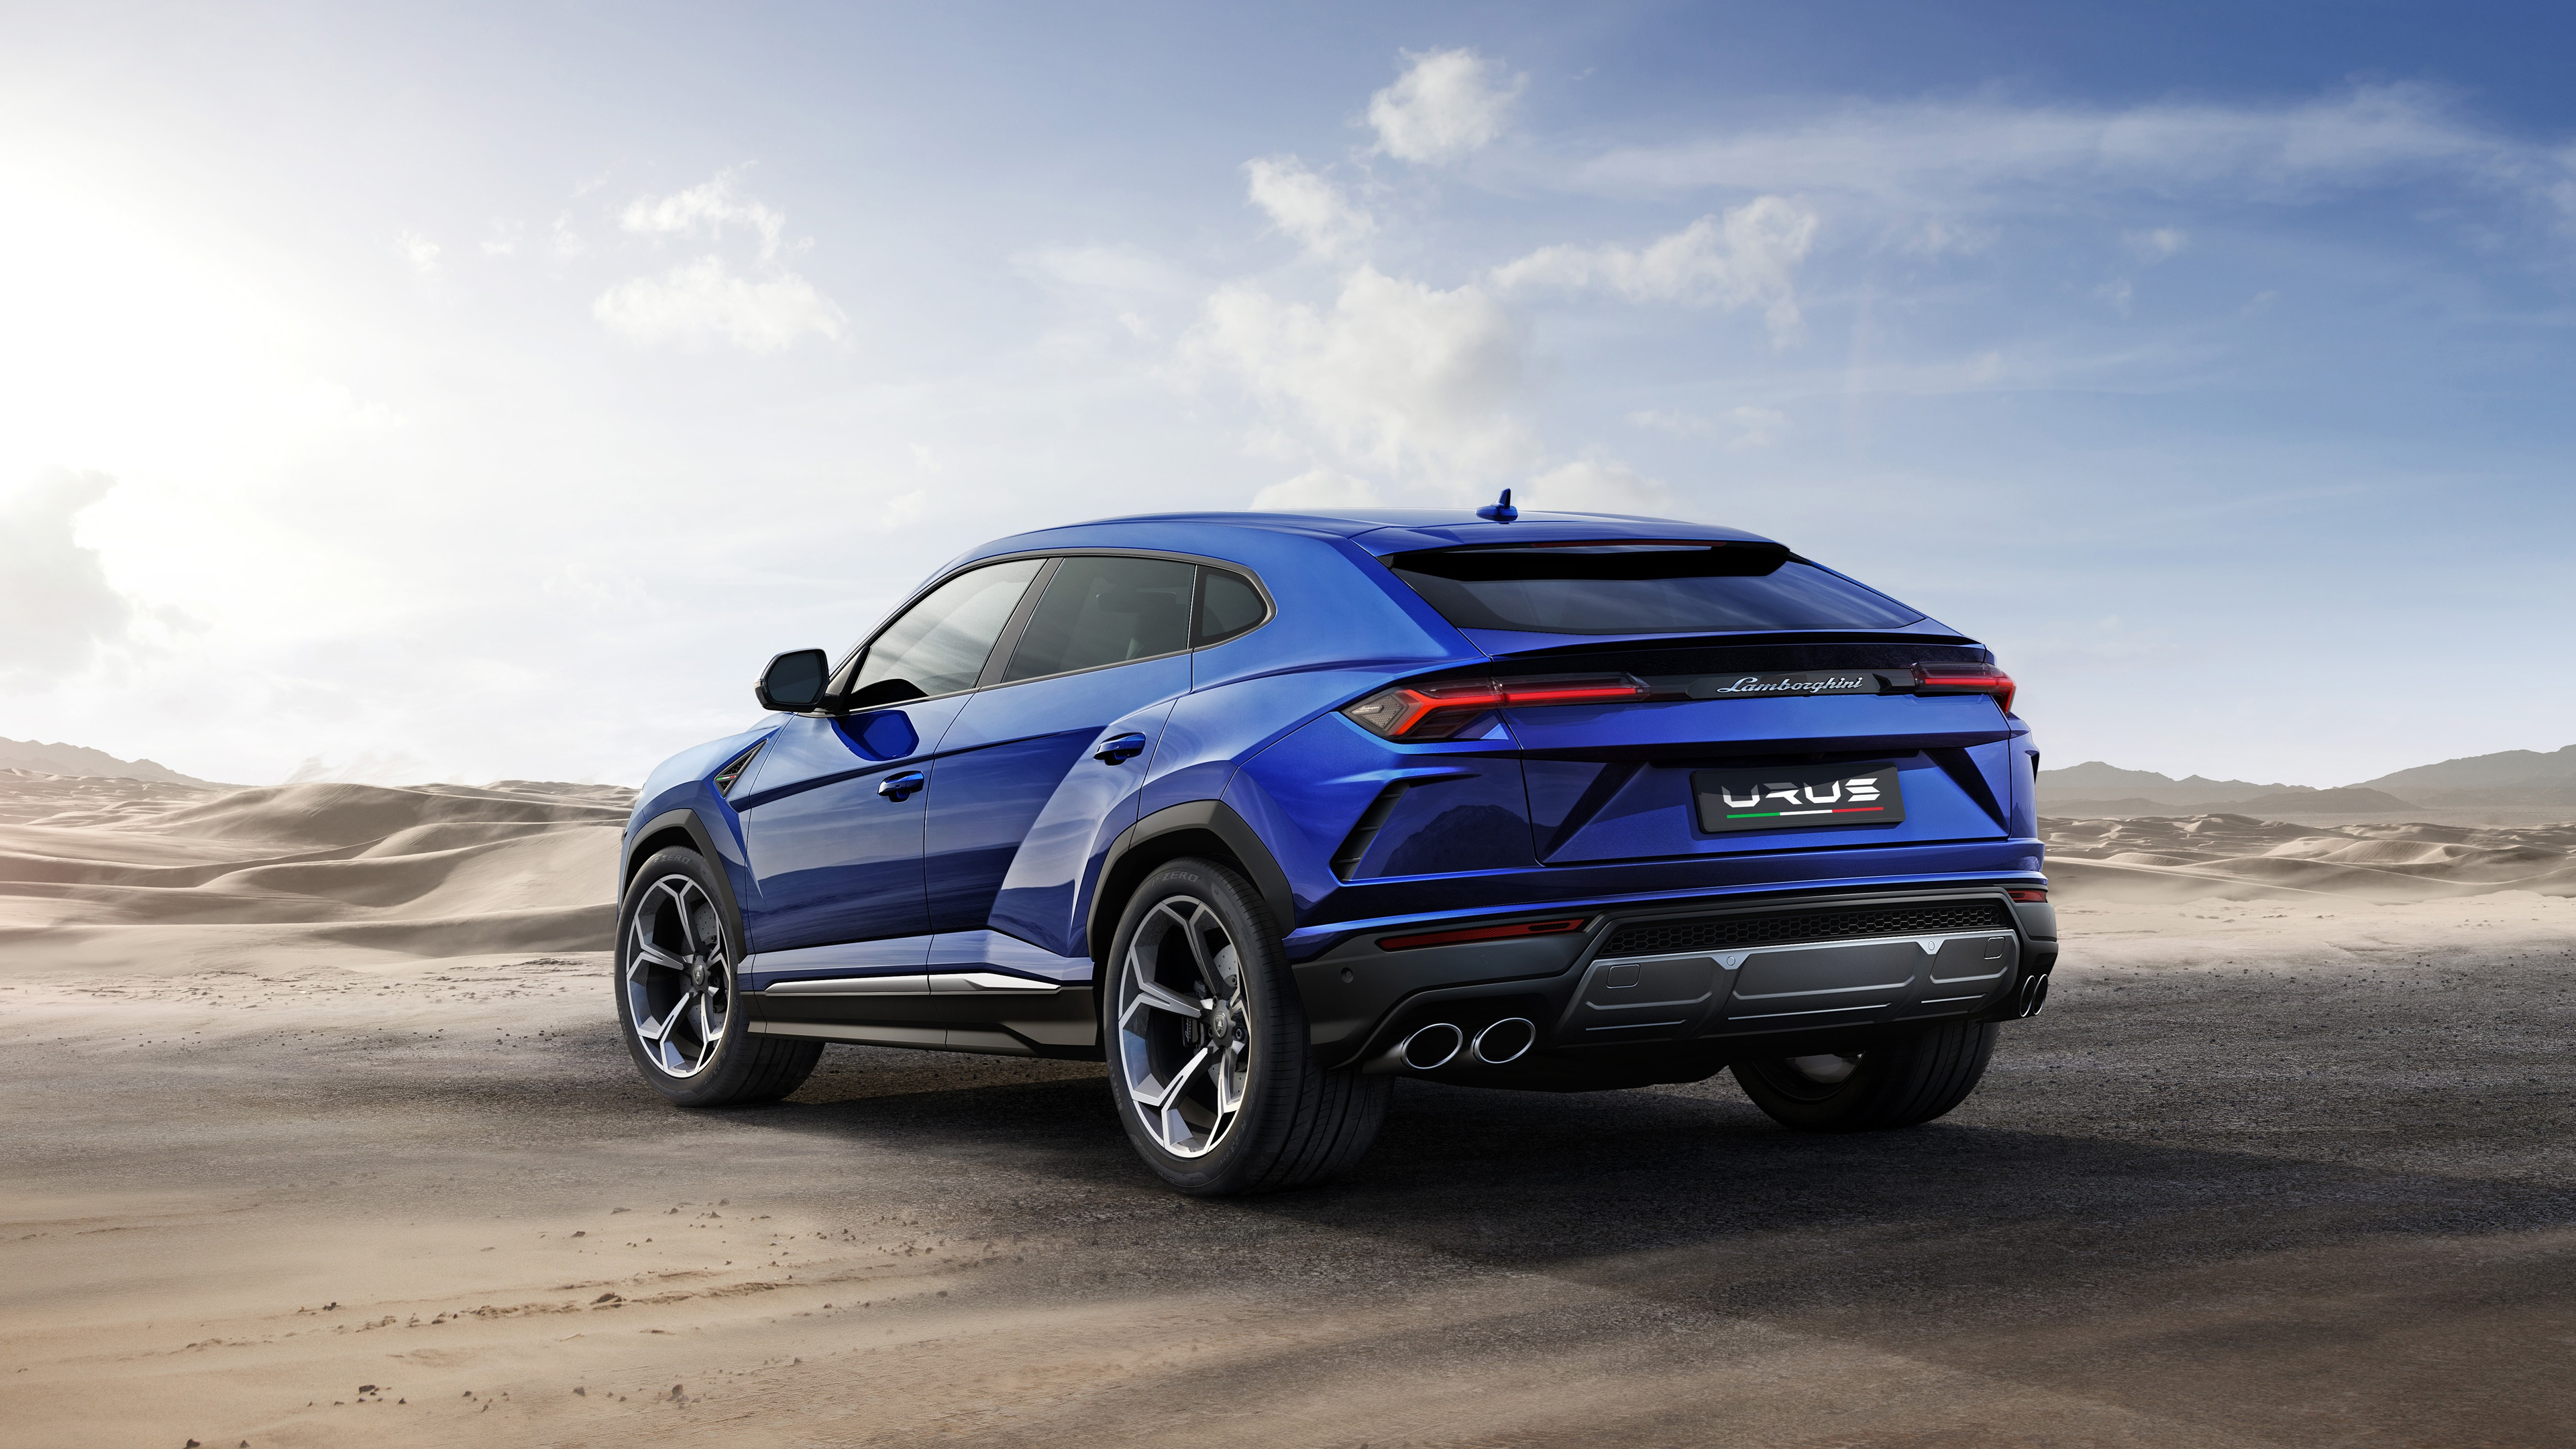 lamborghini urus blue color 4k 1539108766 - Lamborghini Urus Blue Color 4k - suv wallpapers, lamborghini wallpapers, lamborghini urus wallpapers, hd-wallpapers, cars wallpapers, 4k-wallpapers, 2018 cars wallpapers